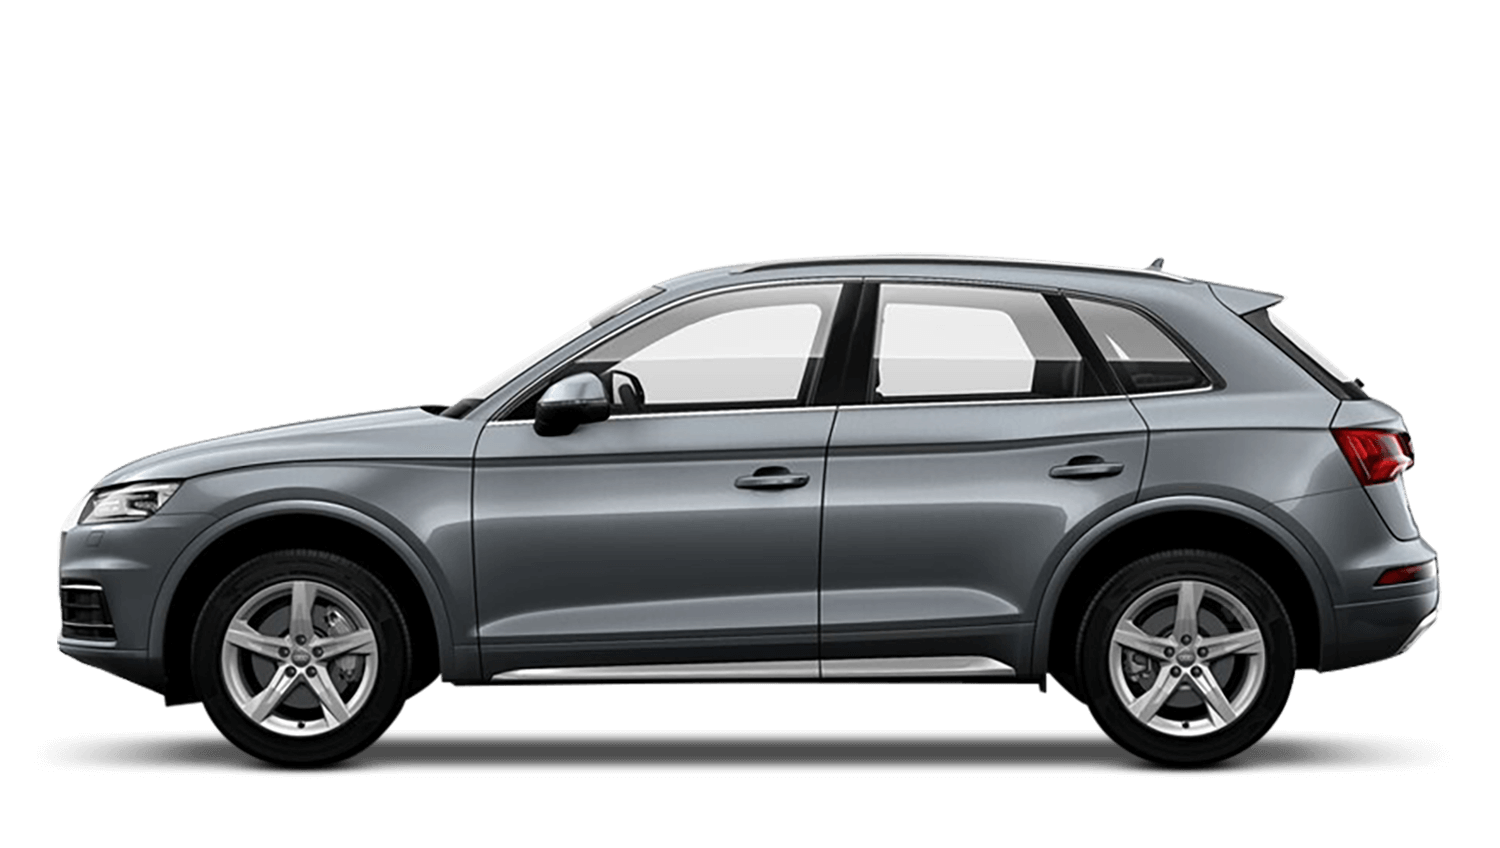 Monsoon Grey (Metallic) Audi Q5